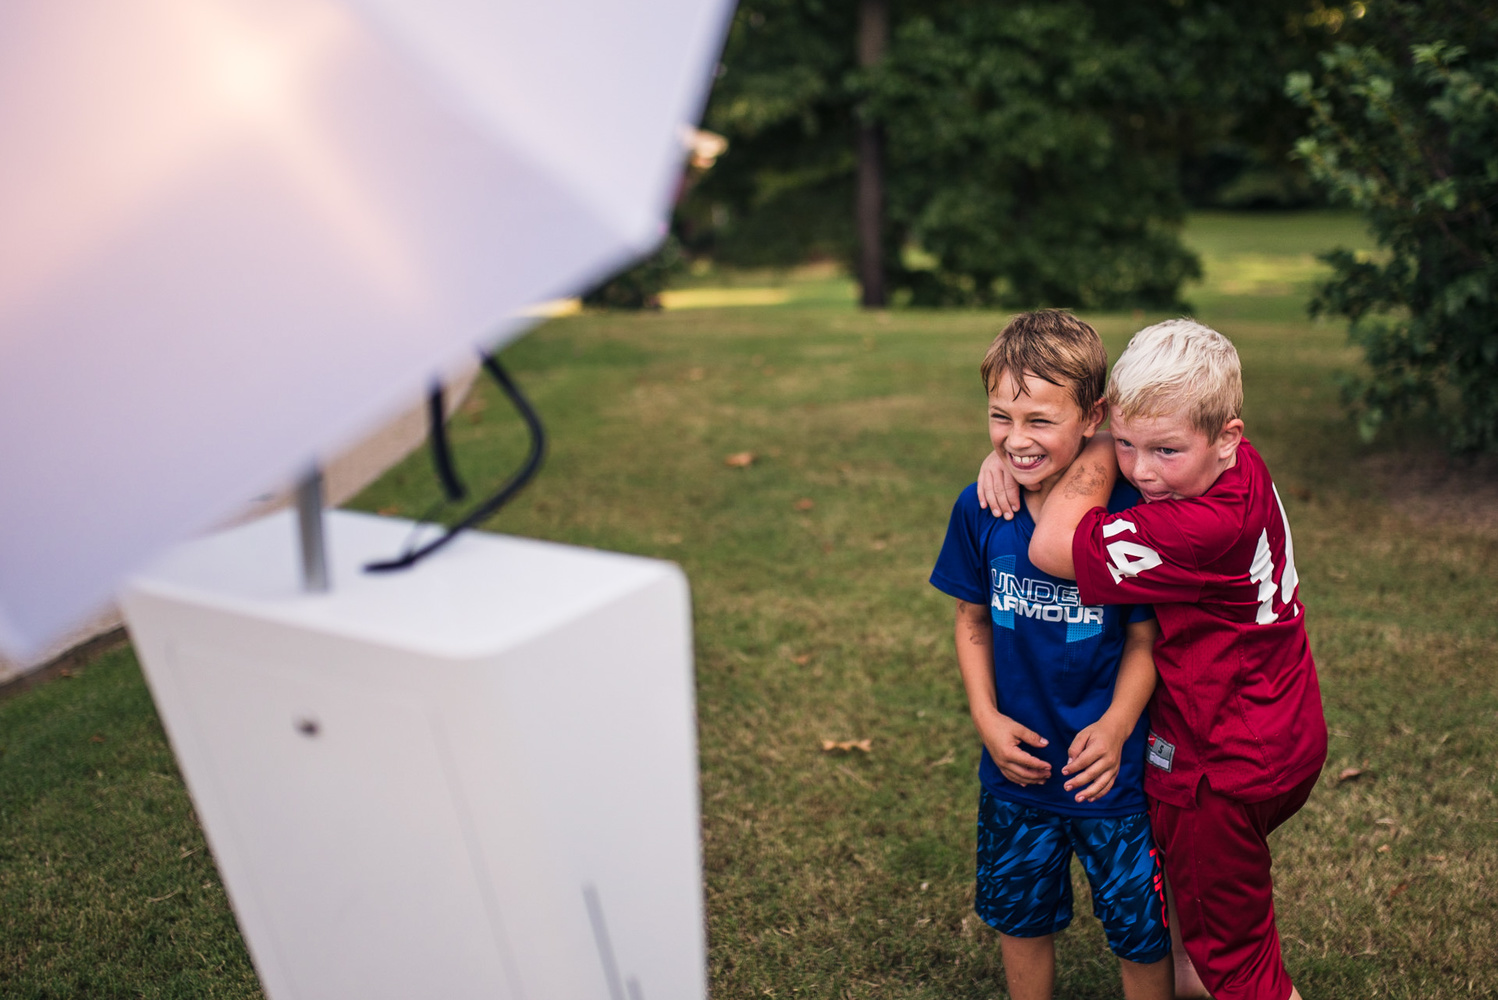 Fstoppers Reviews the Open Air Photobooth From Photobooth